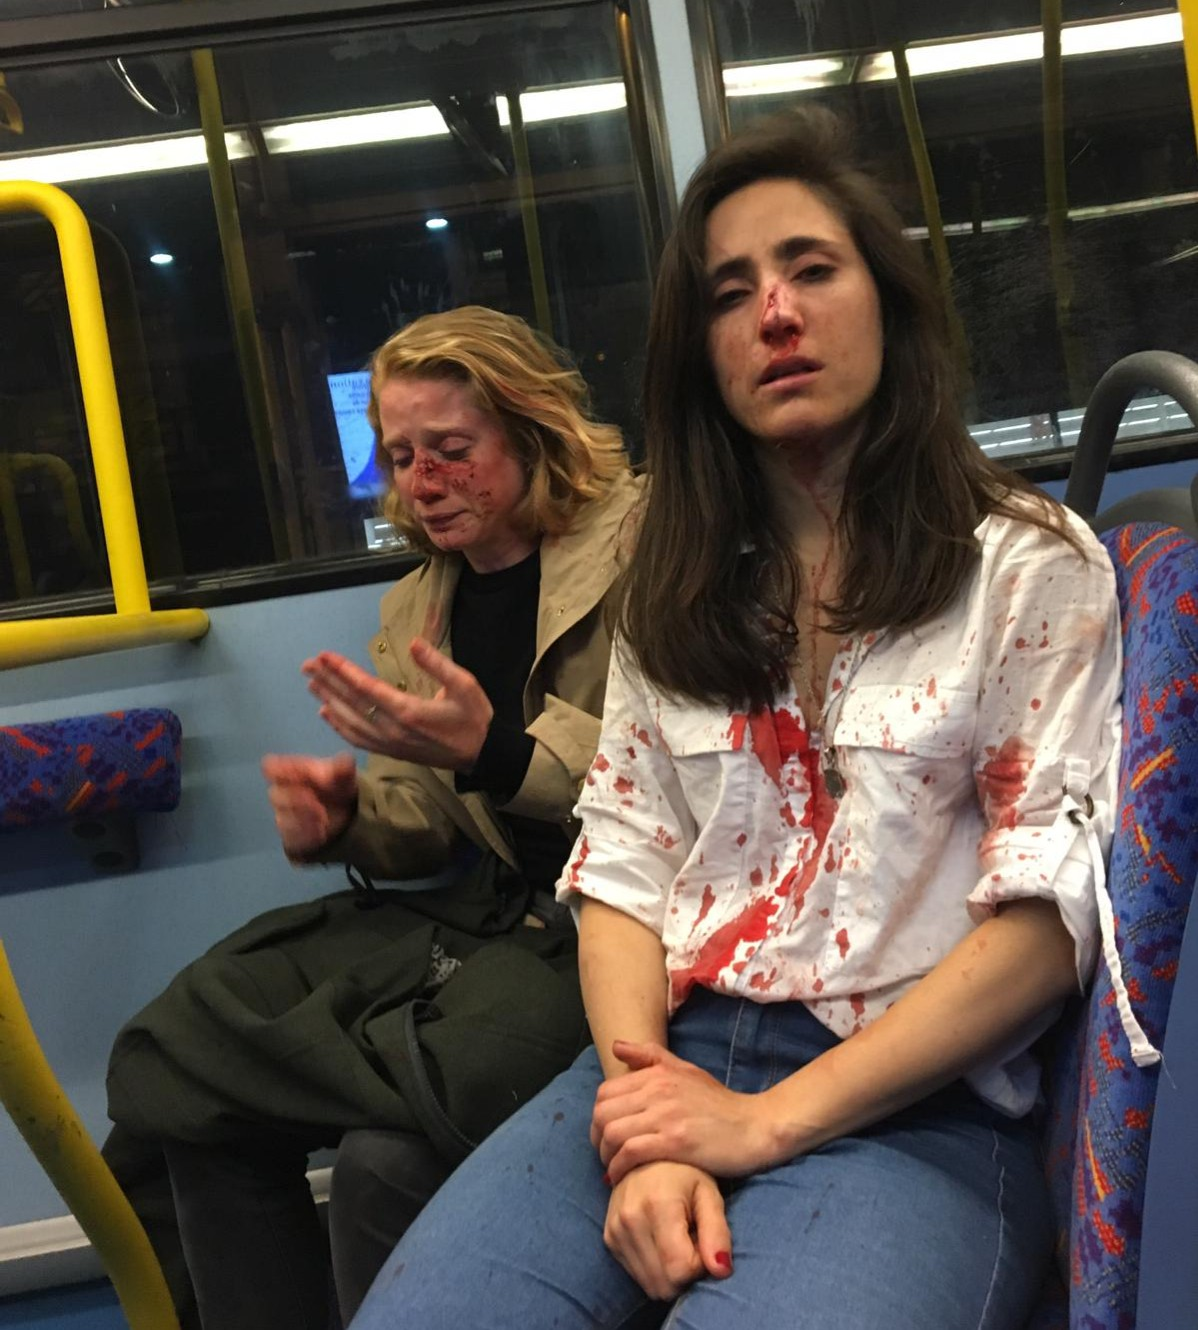 Lesbian couple Melania Geymonat and girlfriend Chris beaten in homophobic attack on London bus